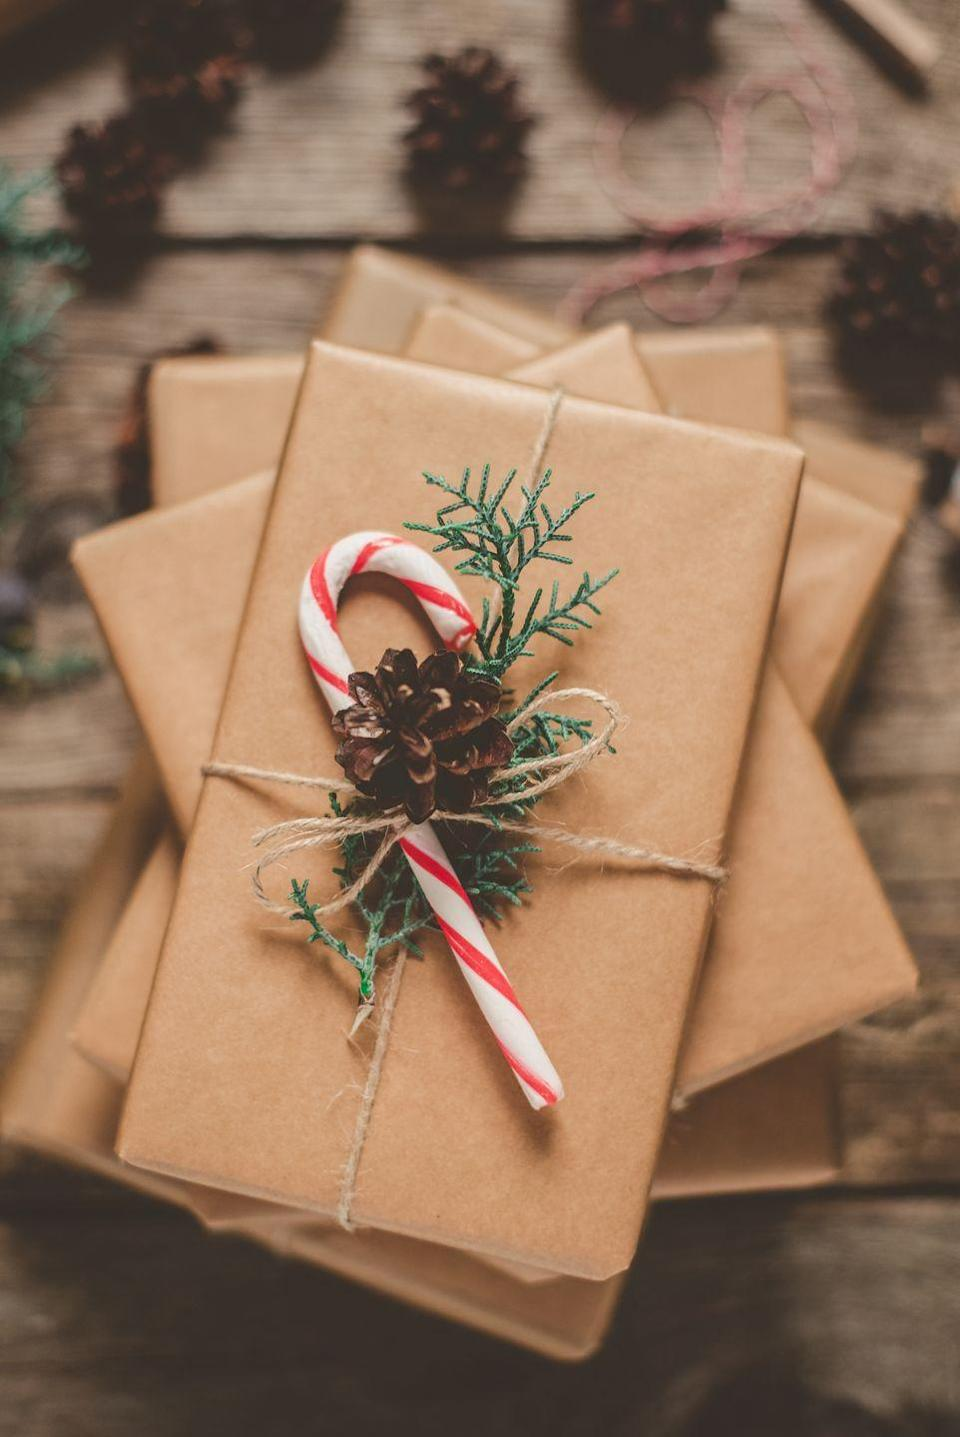 """<p>Another sweet holiday embellishment that'll take your gift wrapping up a notch? Candy canes, peppermints, or other wrapped seasonal candies. </p><p><a class=""""link rapid-noclick-resp"""" href=""""https://www.amazon.com/YumEarth-Organic-Holiday-Candy-Canes/dp/B07YMMK73J?tag=syn-yahoo-20&ascsubtag=%5Bartid%7C10072.g.34015639%5Bsrc%7Cyahoo-us"""" rel=""""nofollow noopener"""" target=""""_blank"""" data-ylk=""""slk:SHOP CANDY CANES"""">SHOP CANDY CANES</a></p>"""